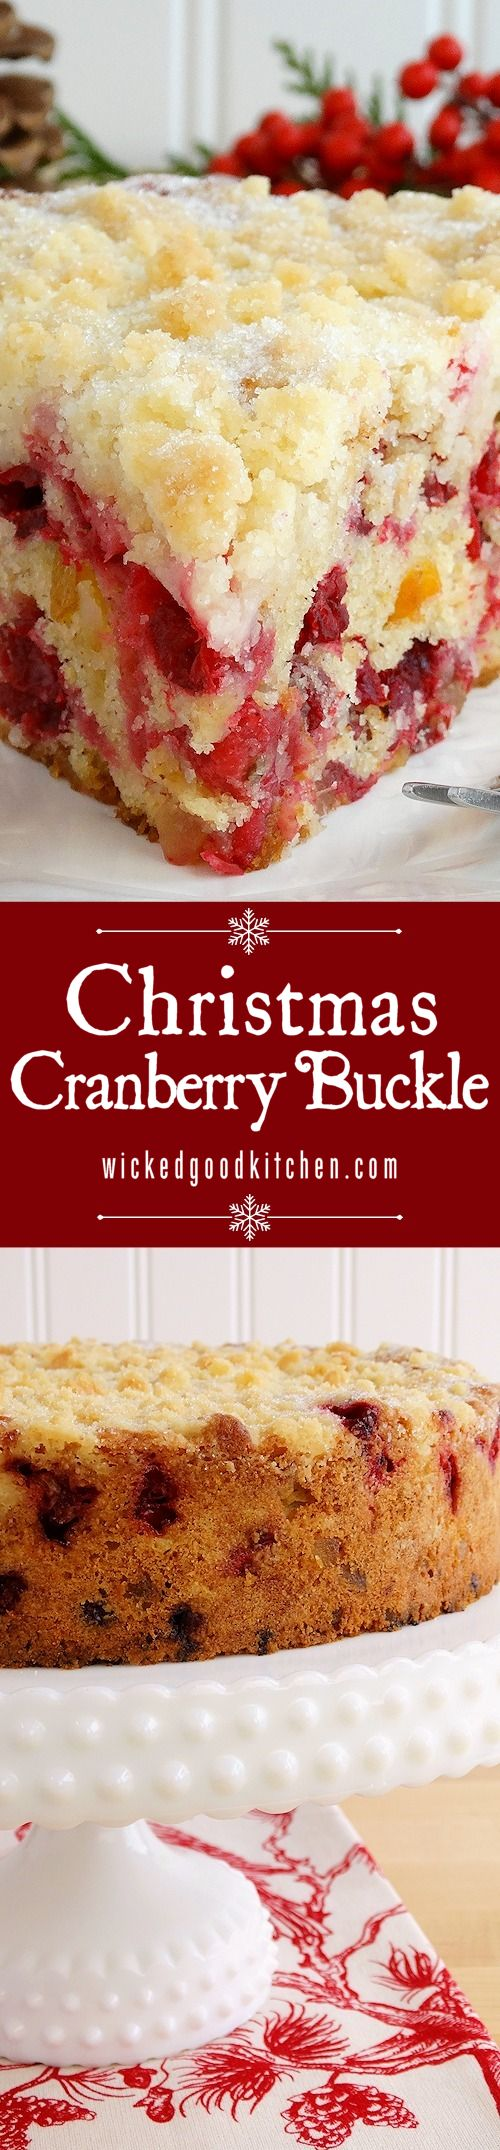 Scrumptious cake filled with fresh cranberries, candied orange peel and crystallized ginger, mildly spiced with cinnamon and nutmeg, and topped with a sugar cookie streusel. #Thanksgiving #Christmas #Holidays breakfast or brunch!